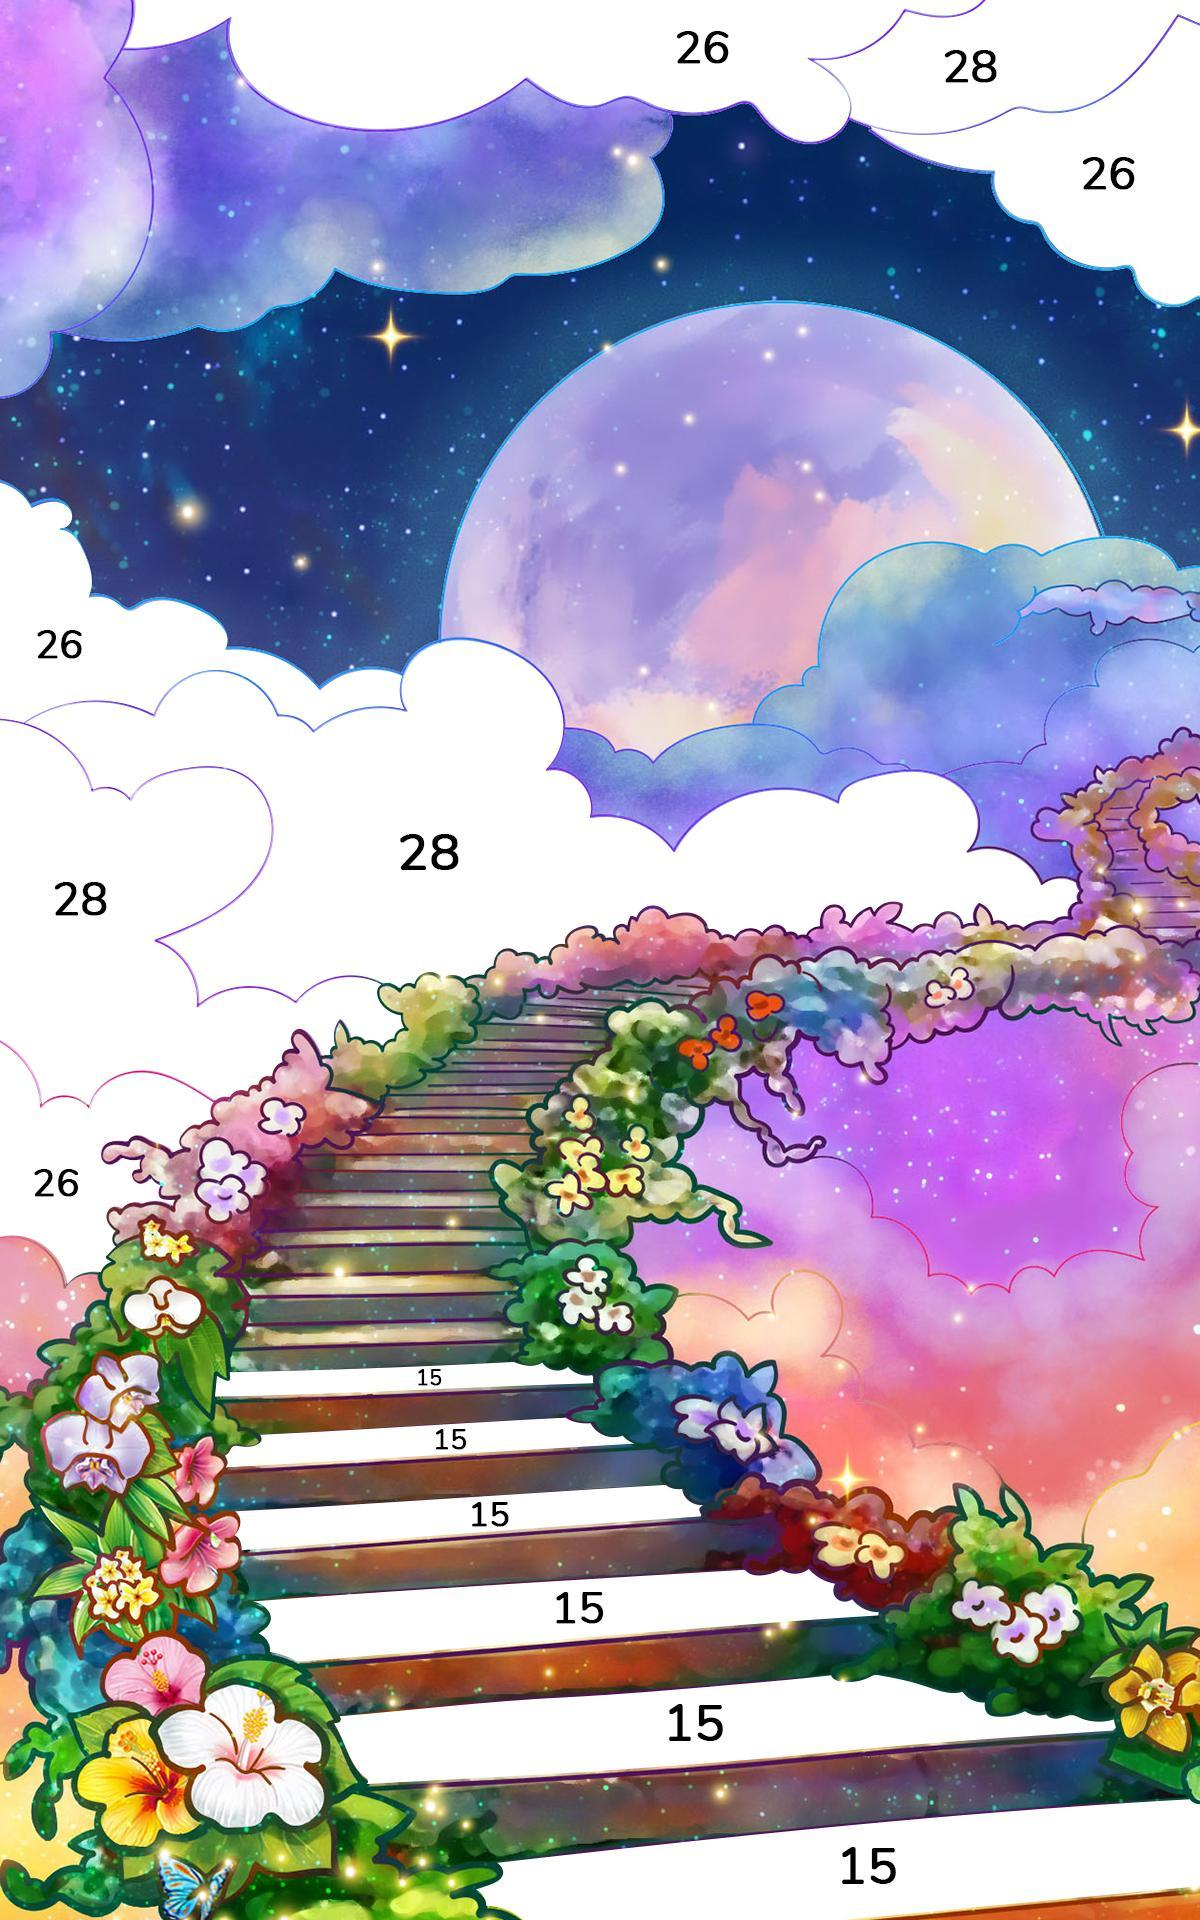 Bible Coloring Paint by Number, Free Bible Games 2.1.14 Screenshot 11